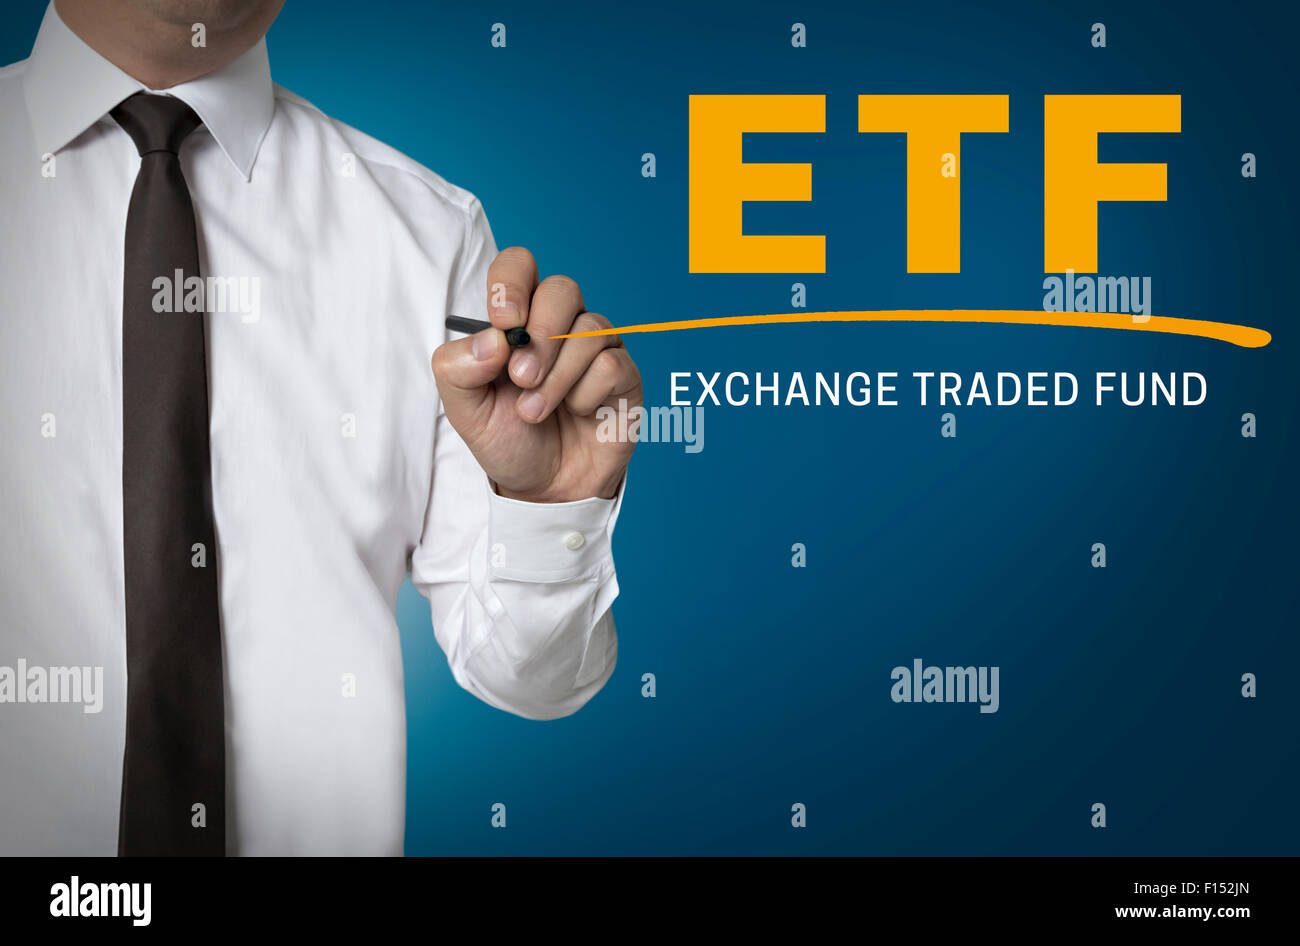 ETF is written by businessman background. Stock Photo